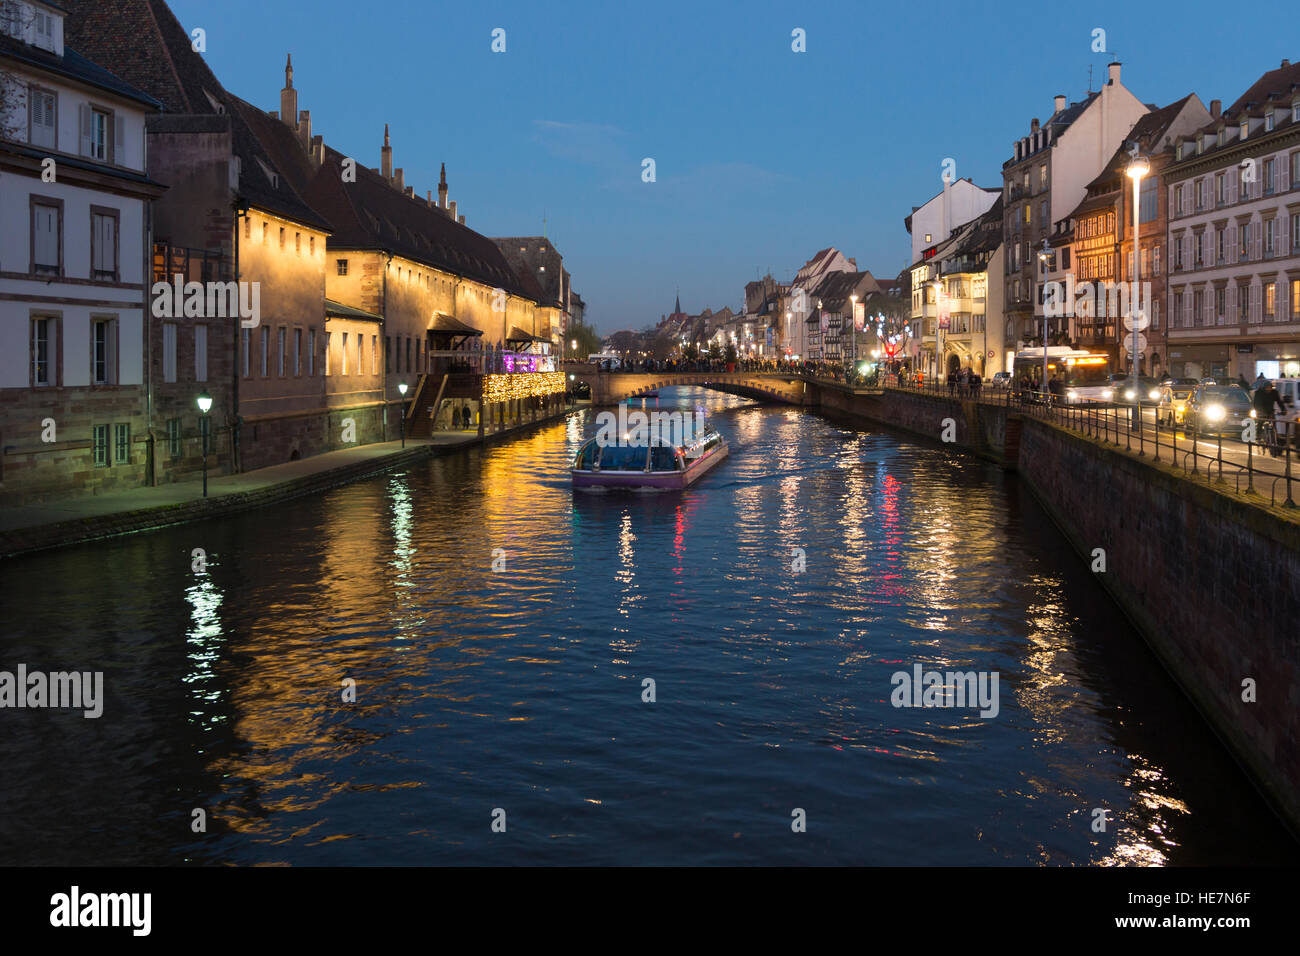 A tourist boat on the L'Ill river at night, Strasbourg Stock Photo